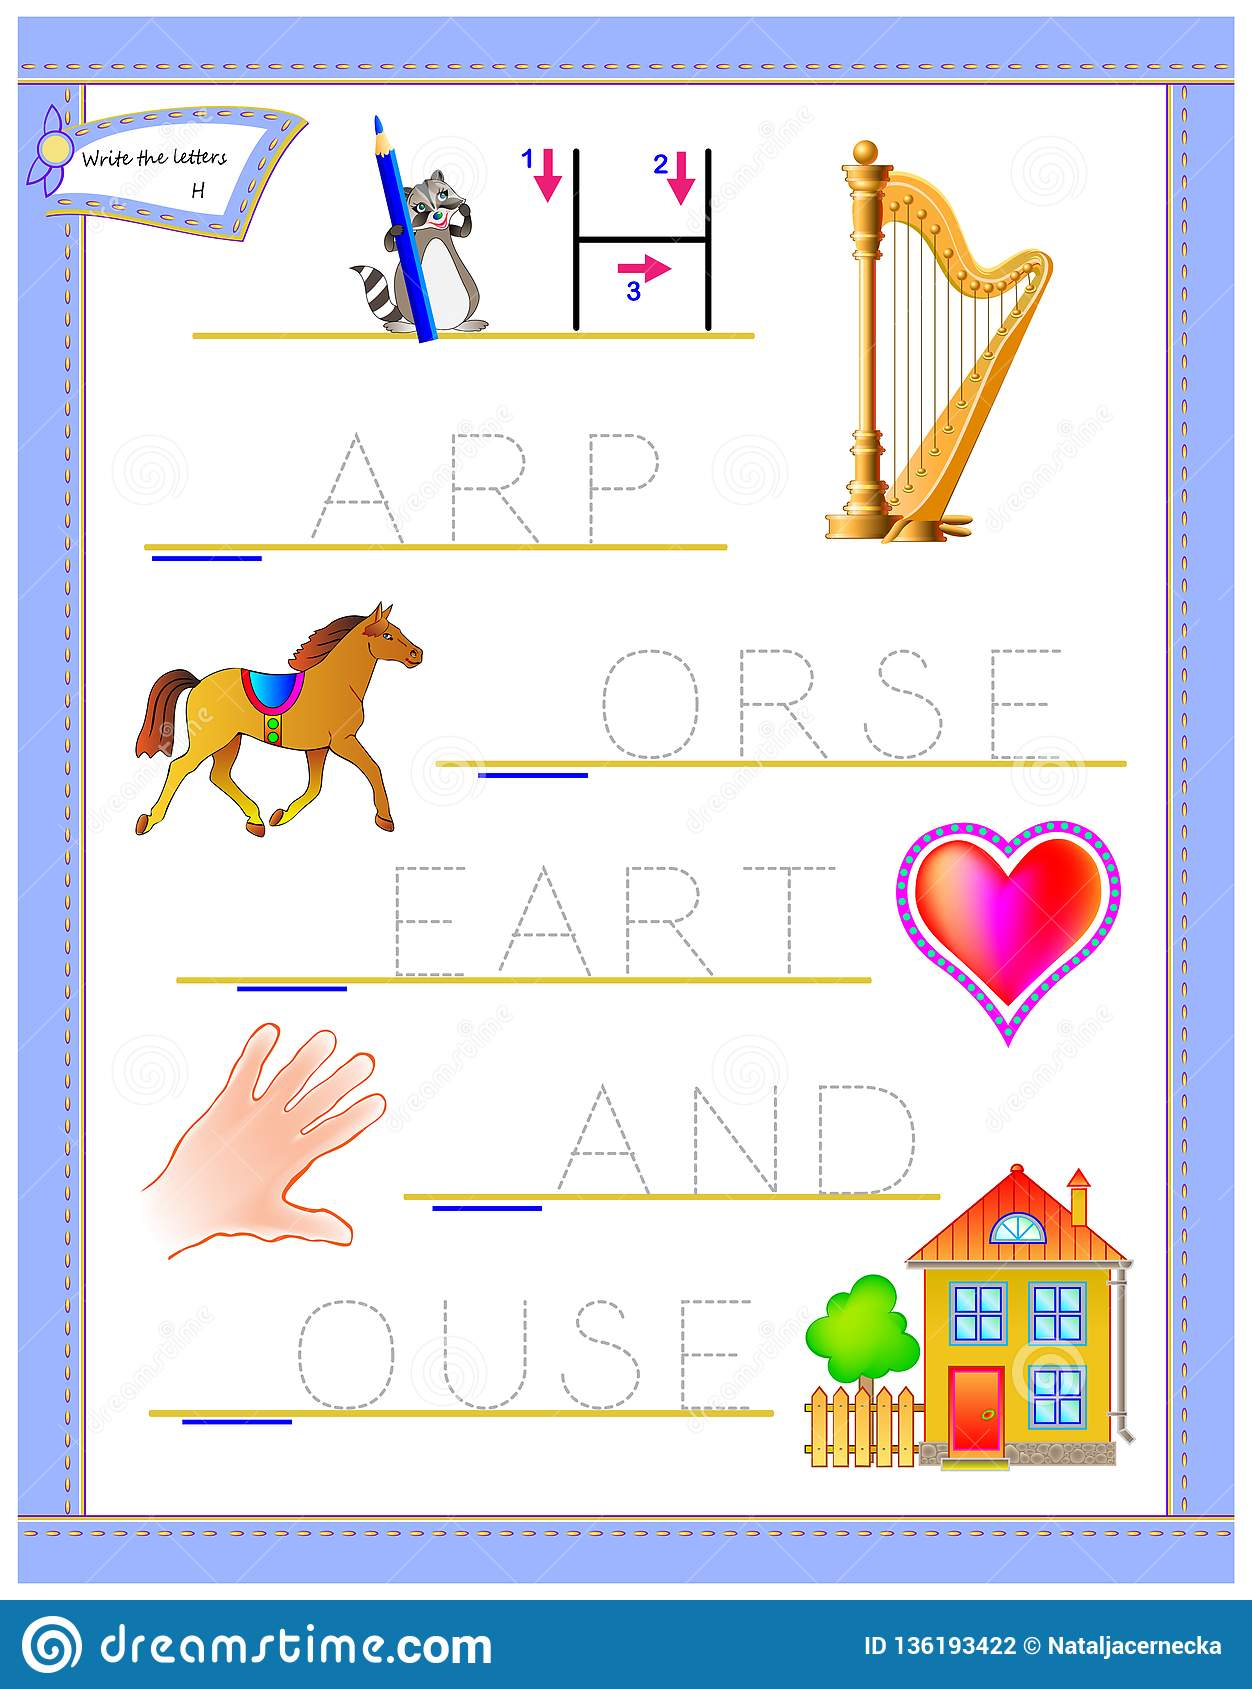 Tracing Letter H For Study English Alphabet Printable